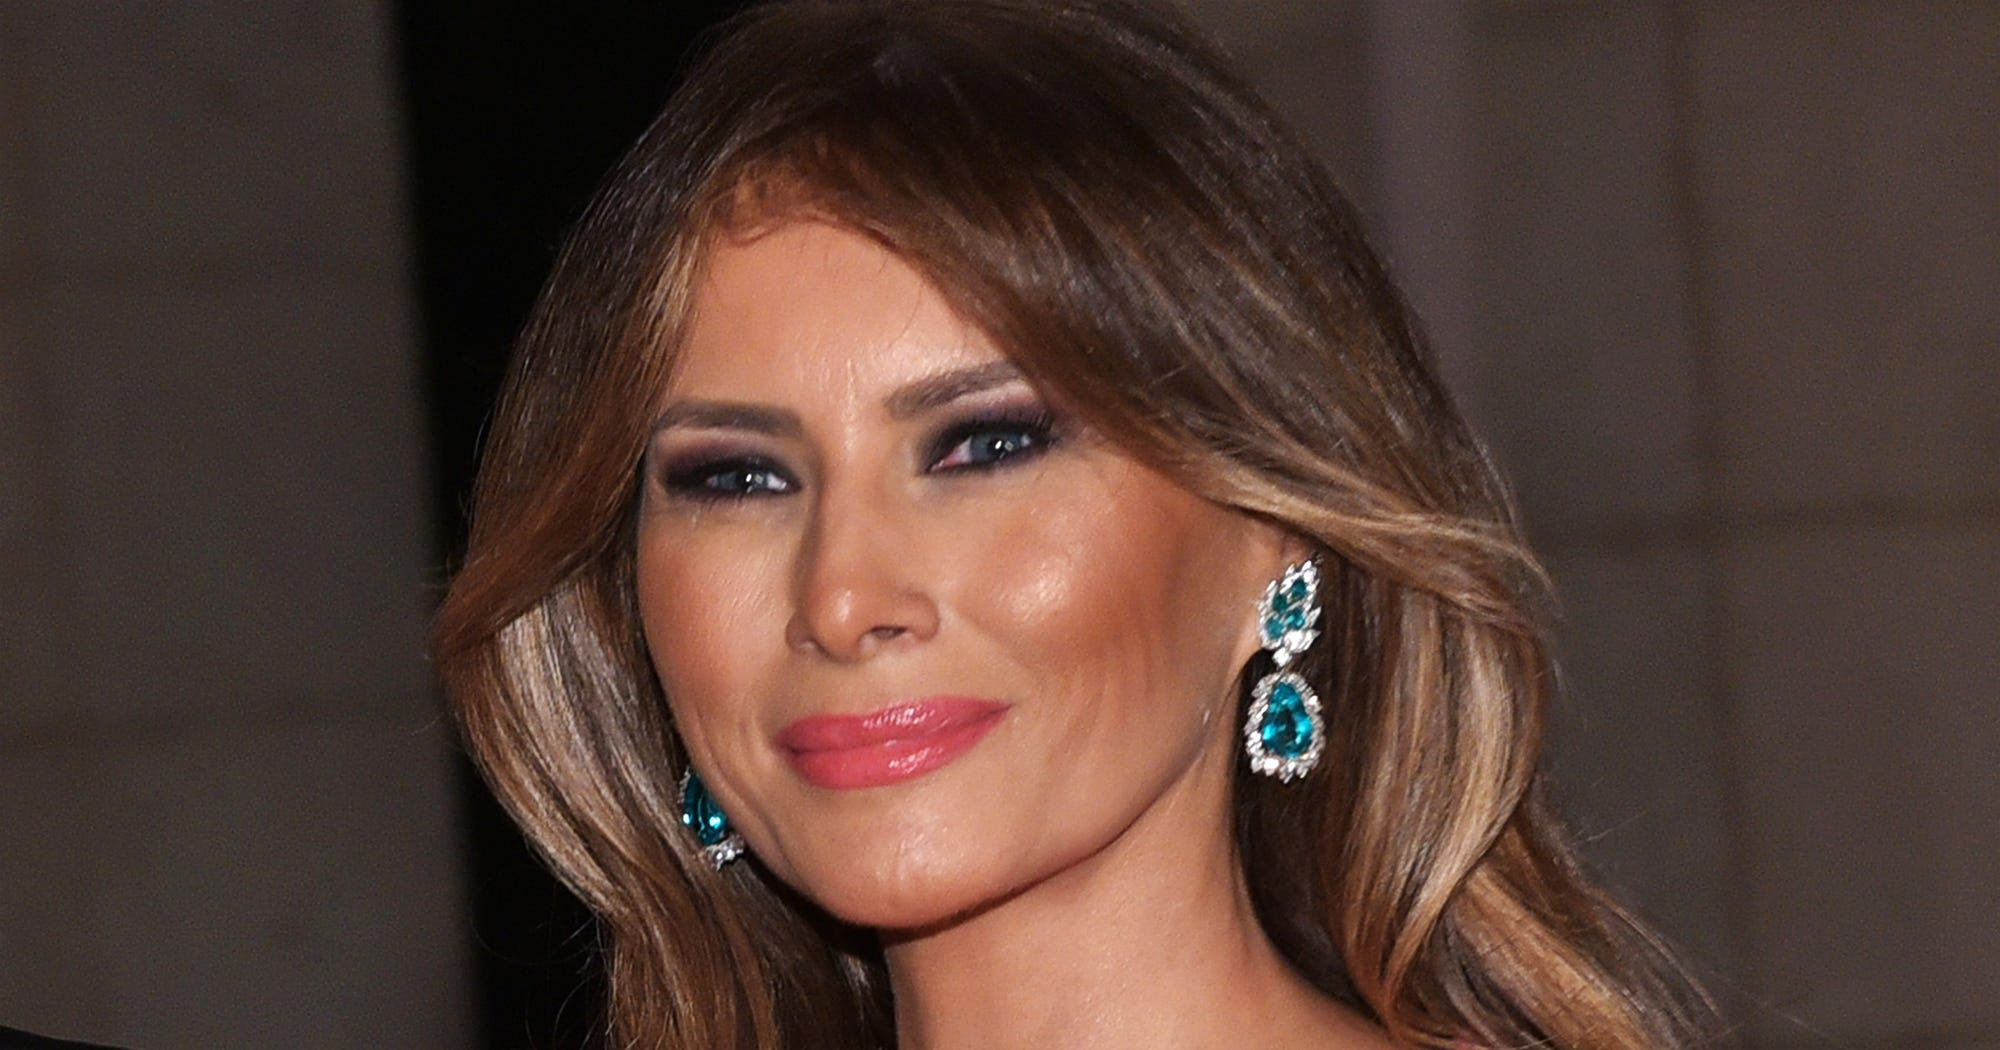 Melania Trump Just Took A Big Step Toward Redecorating The